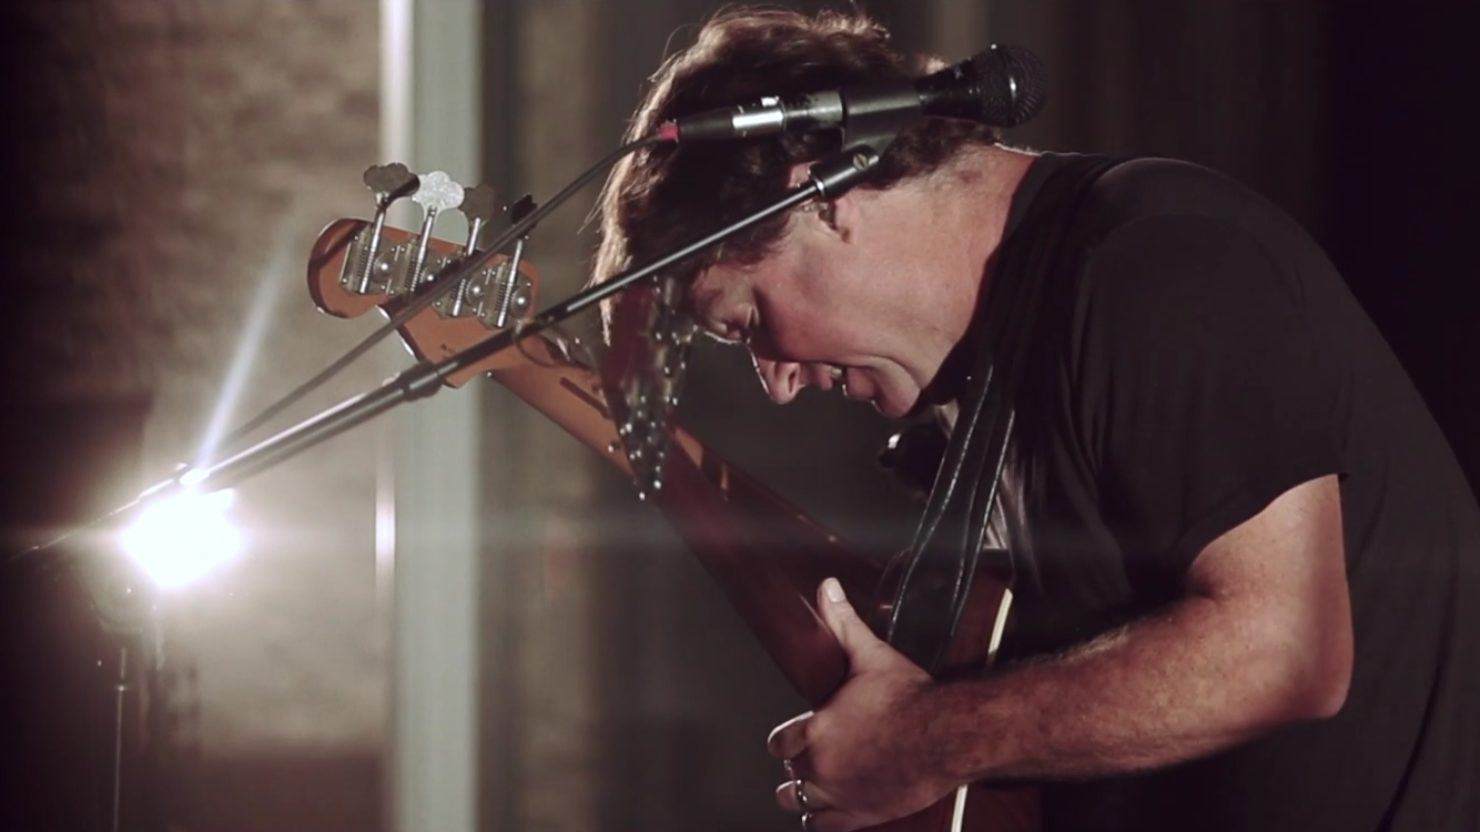 Keller Williams Performs Ourvinyl Session